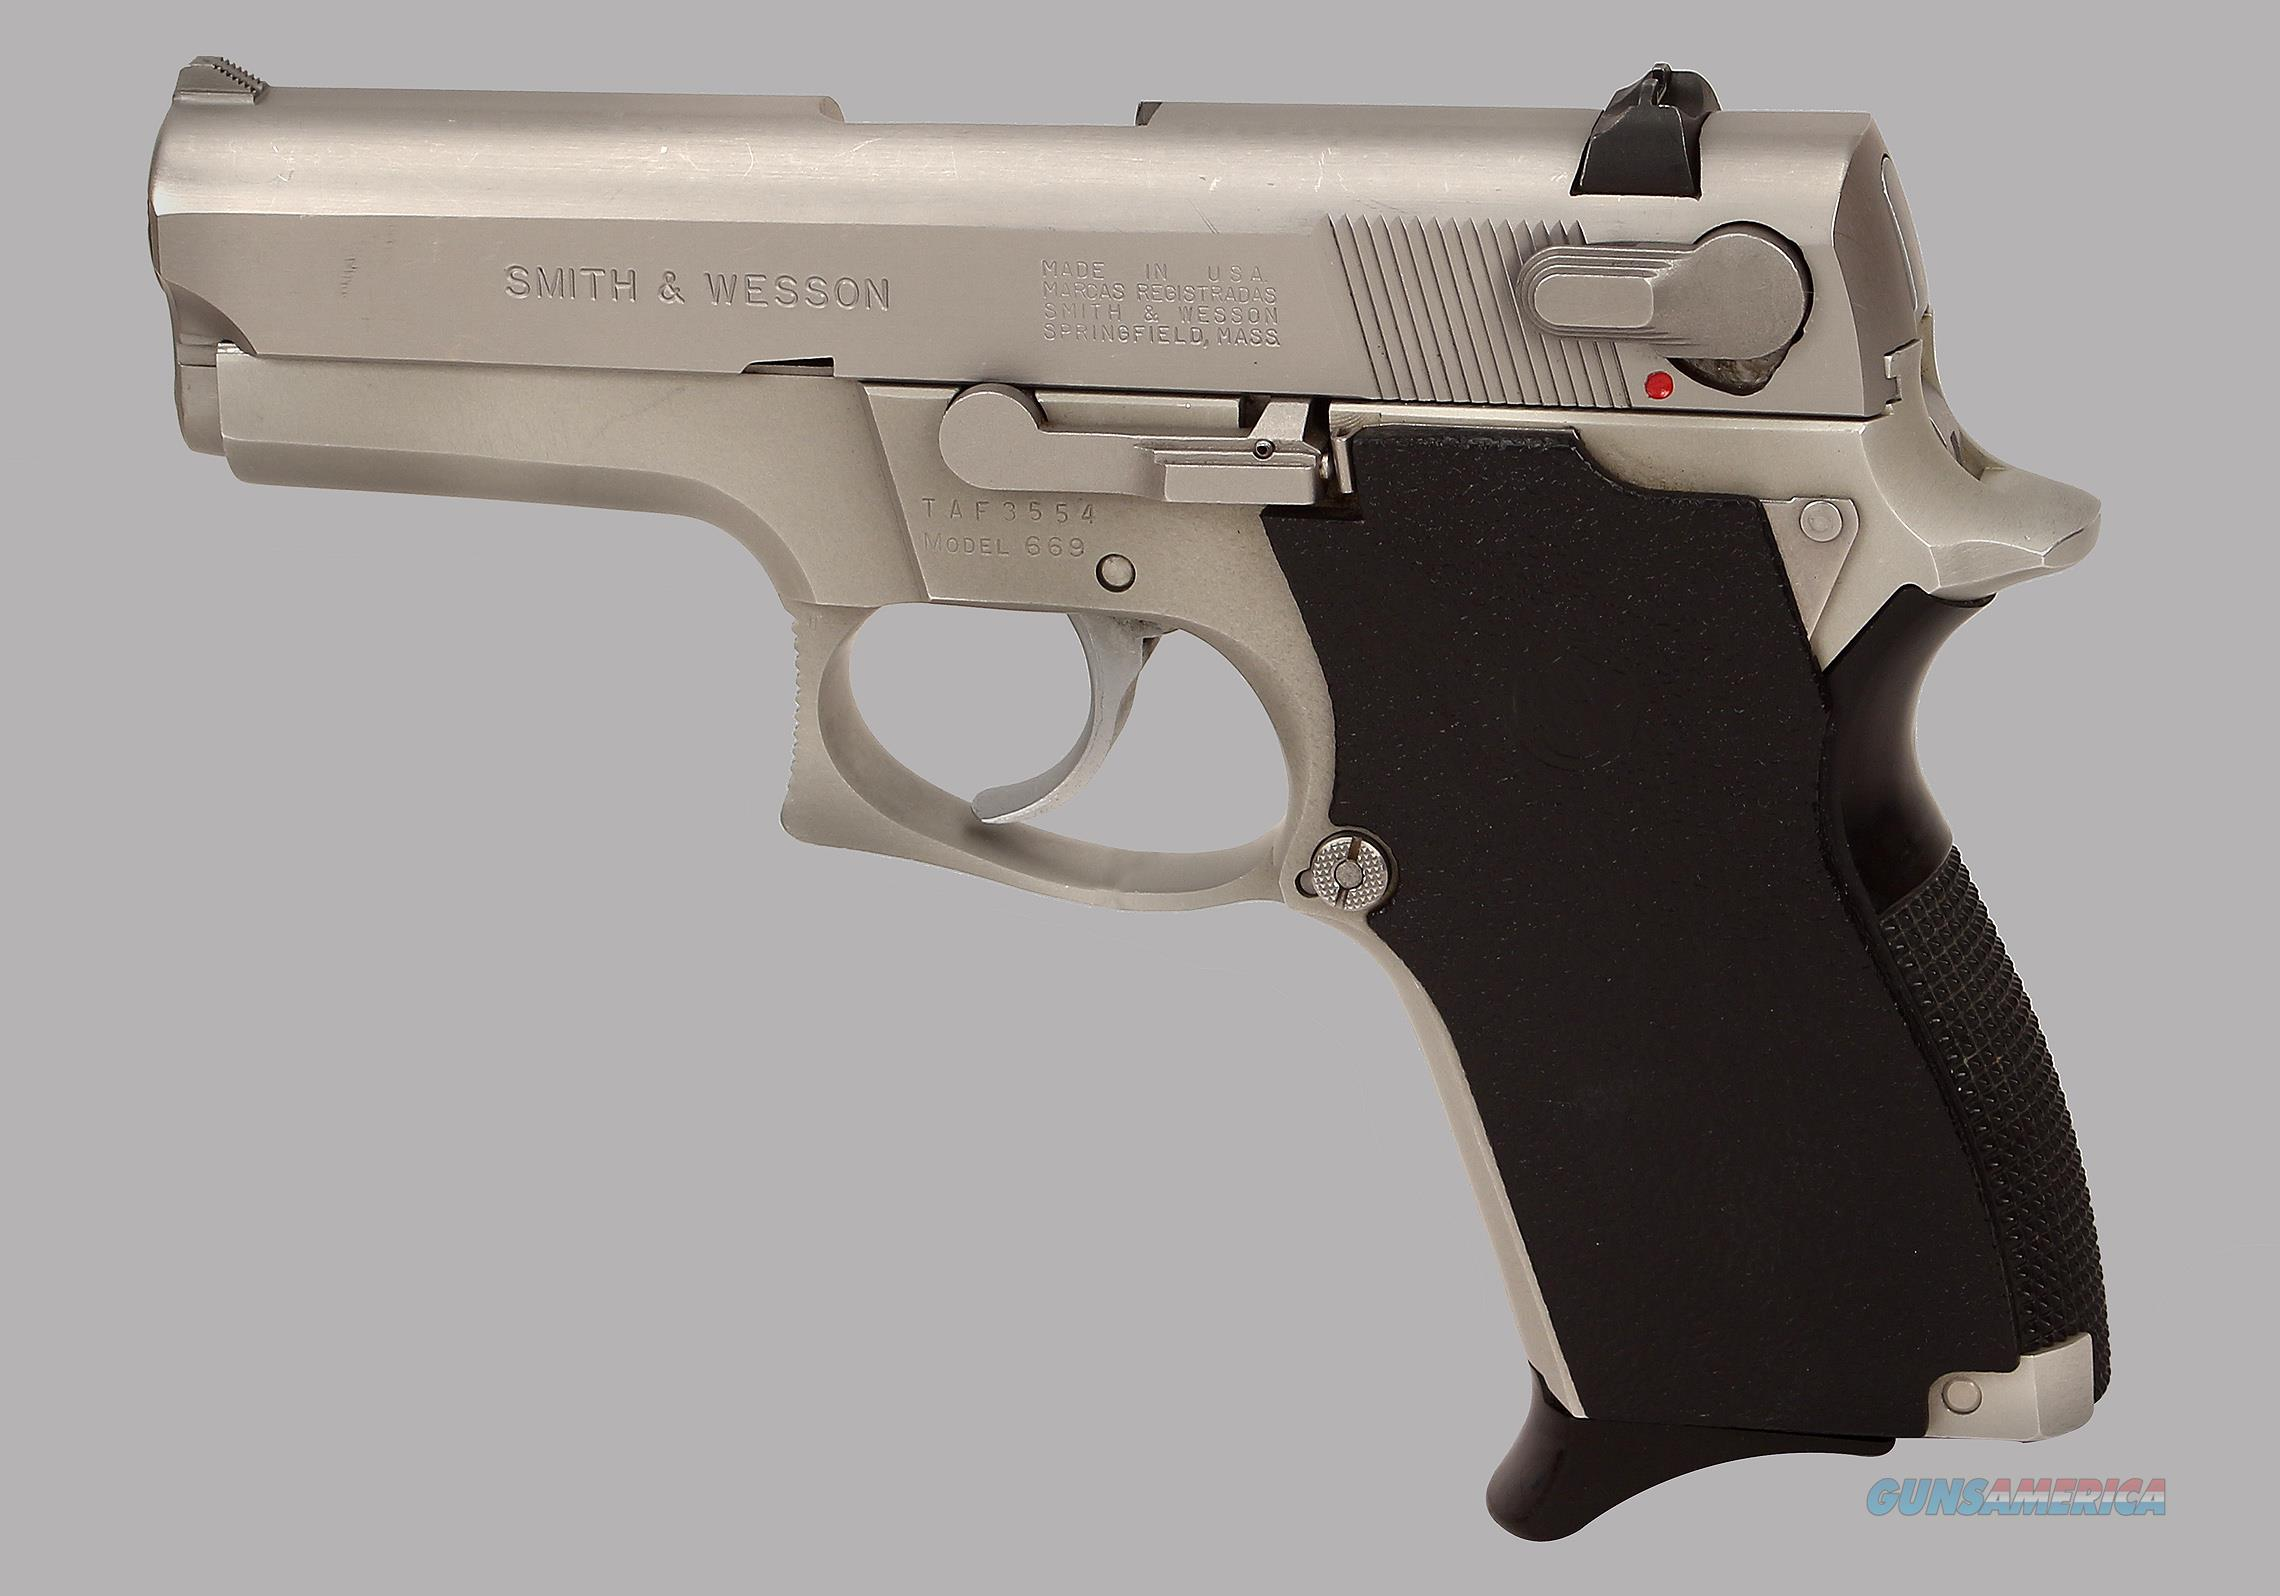 Smith & Wesson 9mm Model 669 Pistol  Guns > Pistols > Smith & Wesson Pistols - Autos > Steel Frame